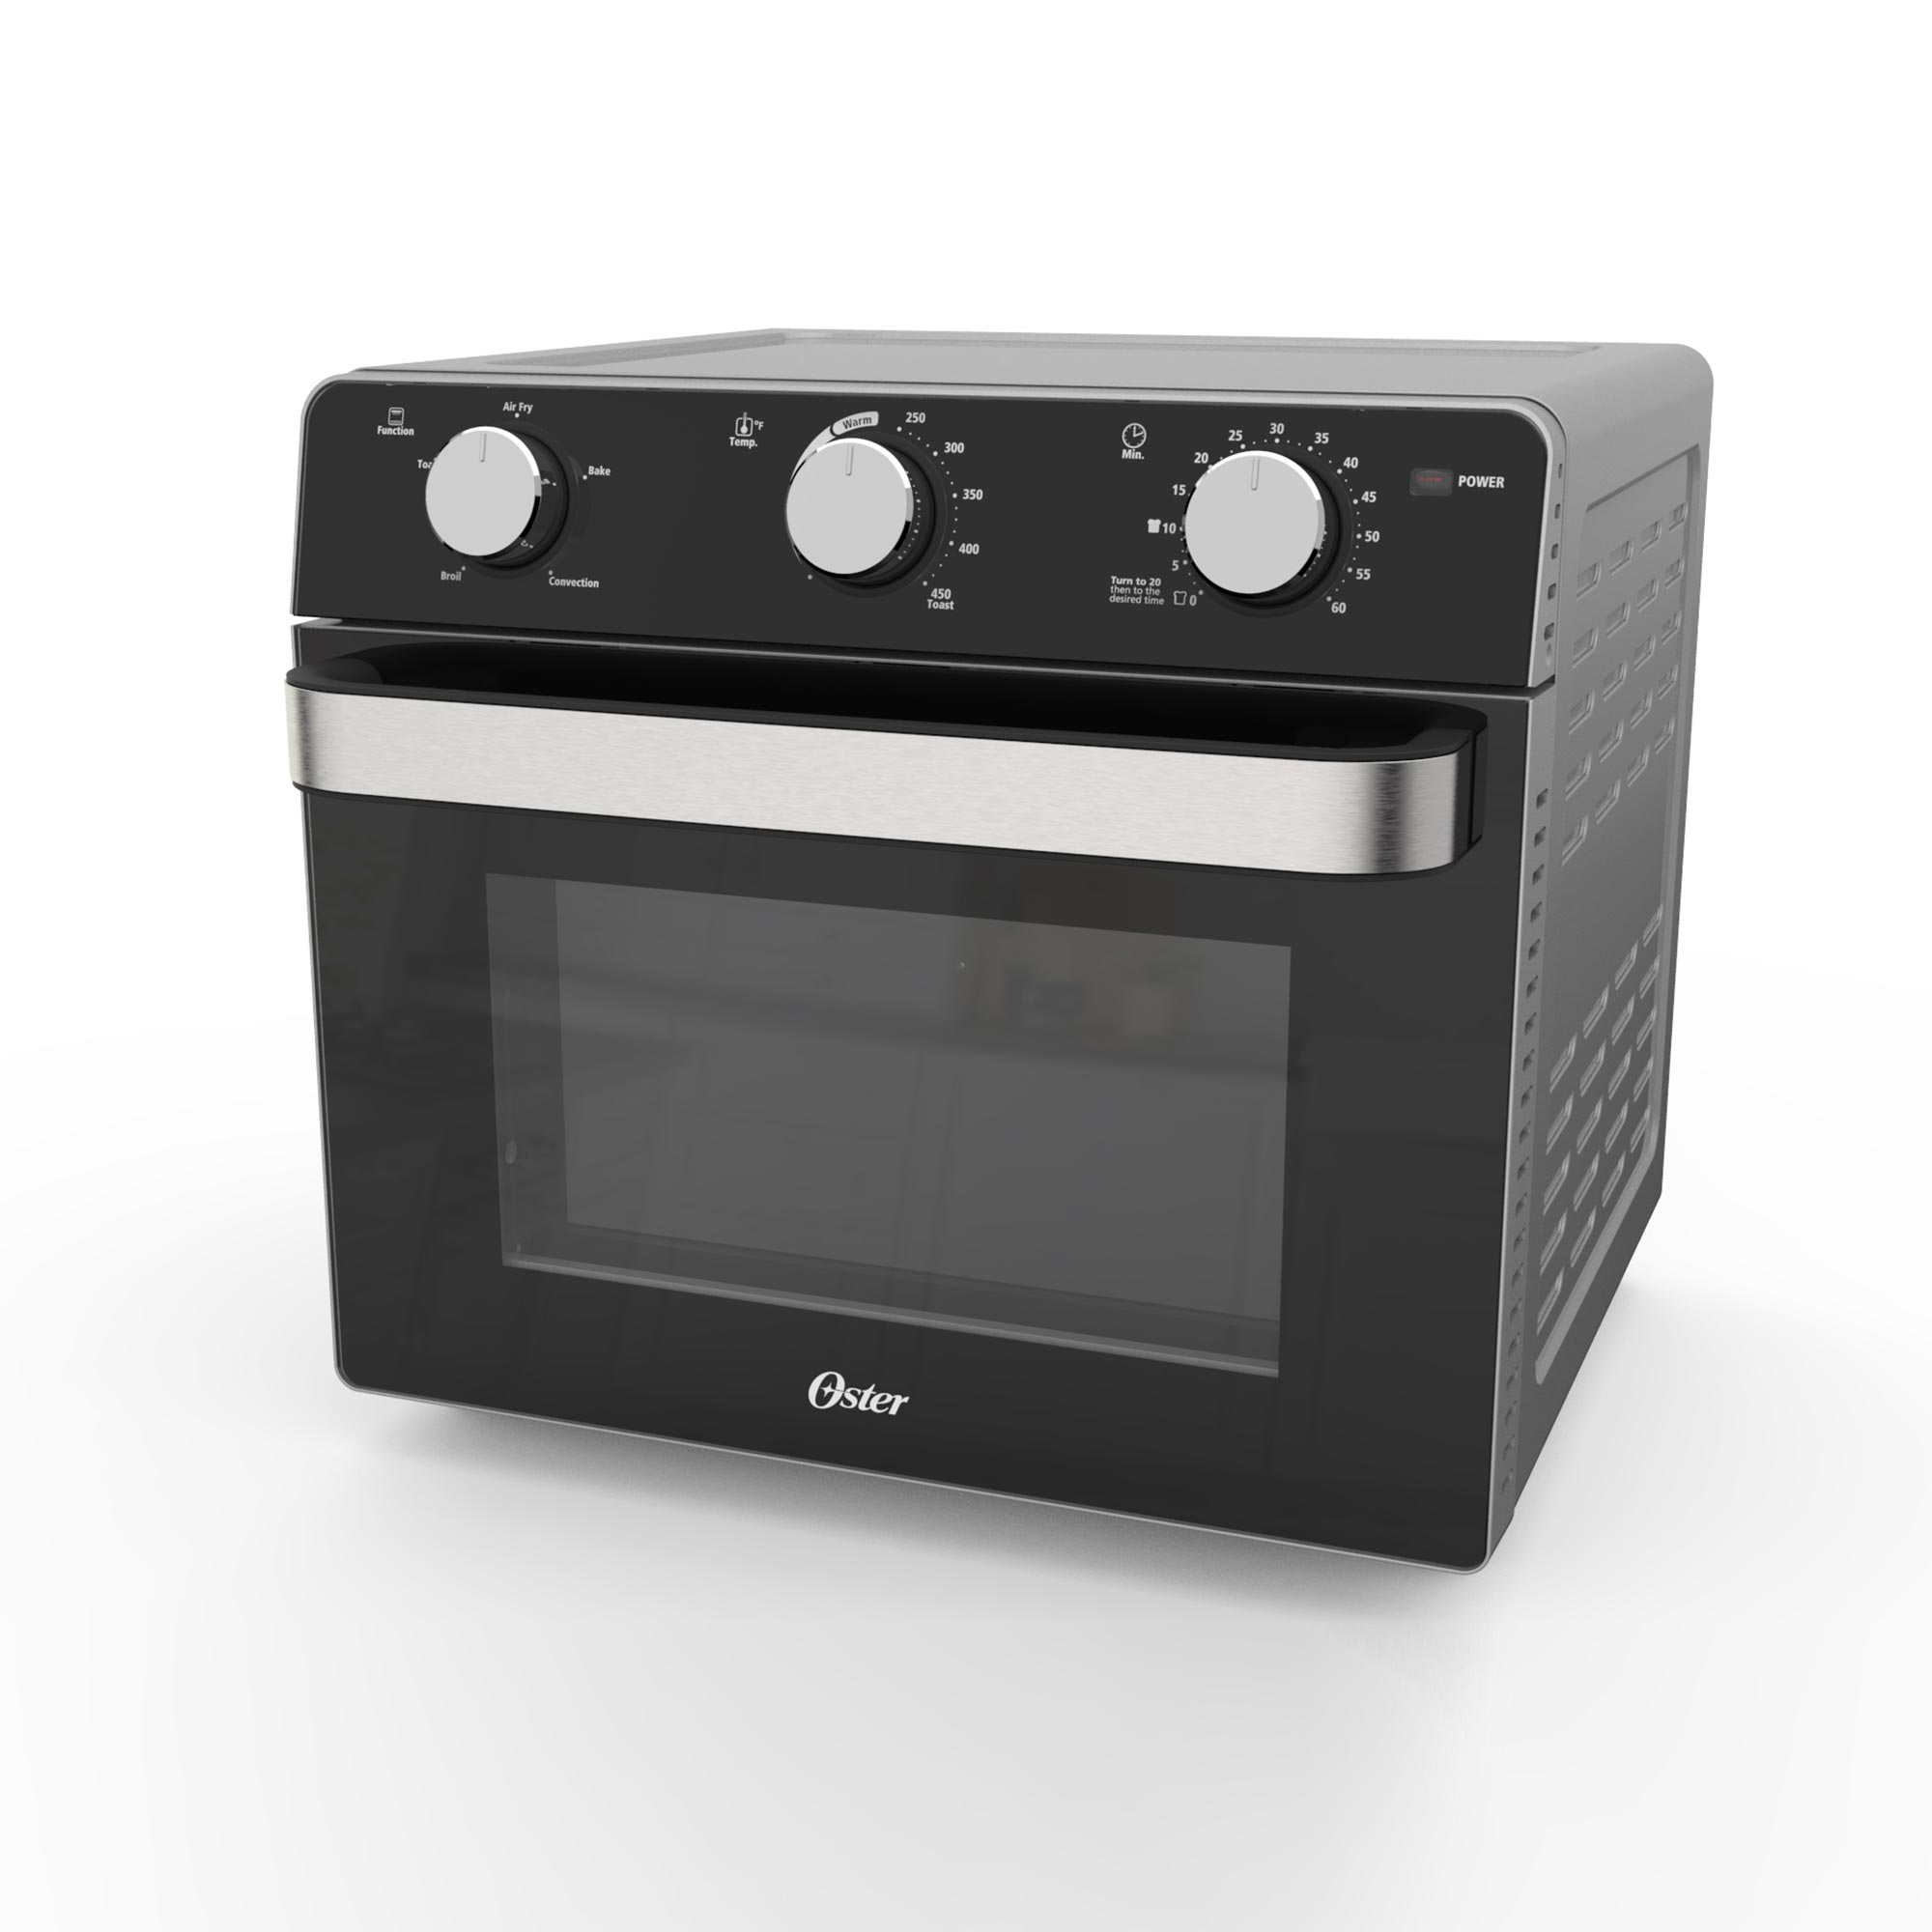 oster countertop toaster oven with air fryer black model